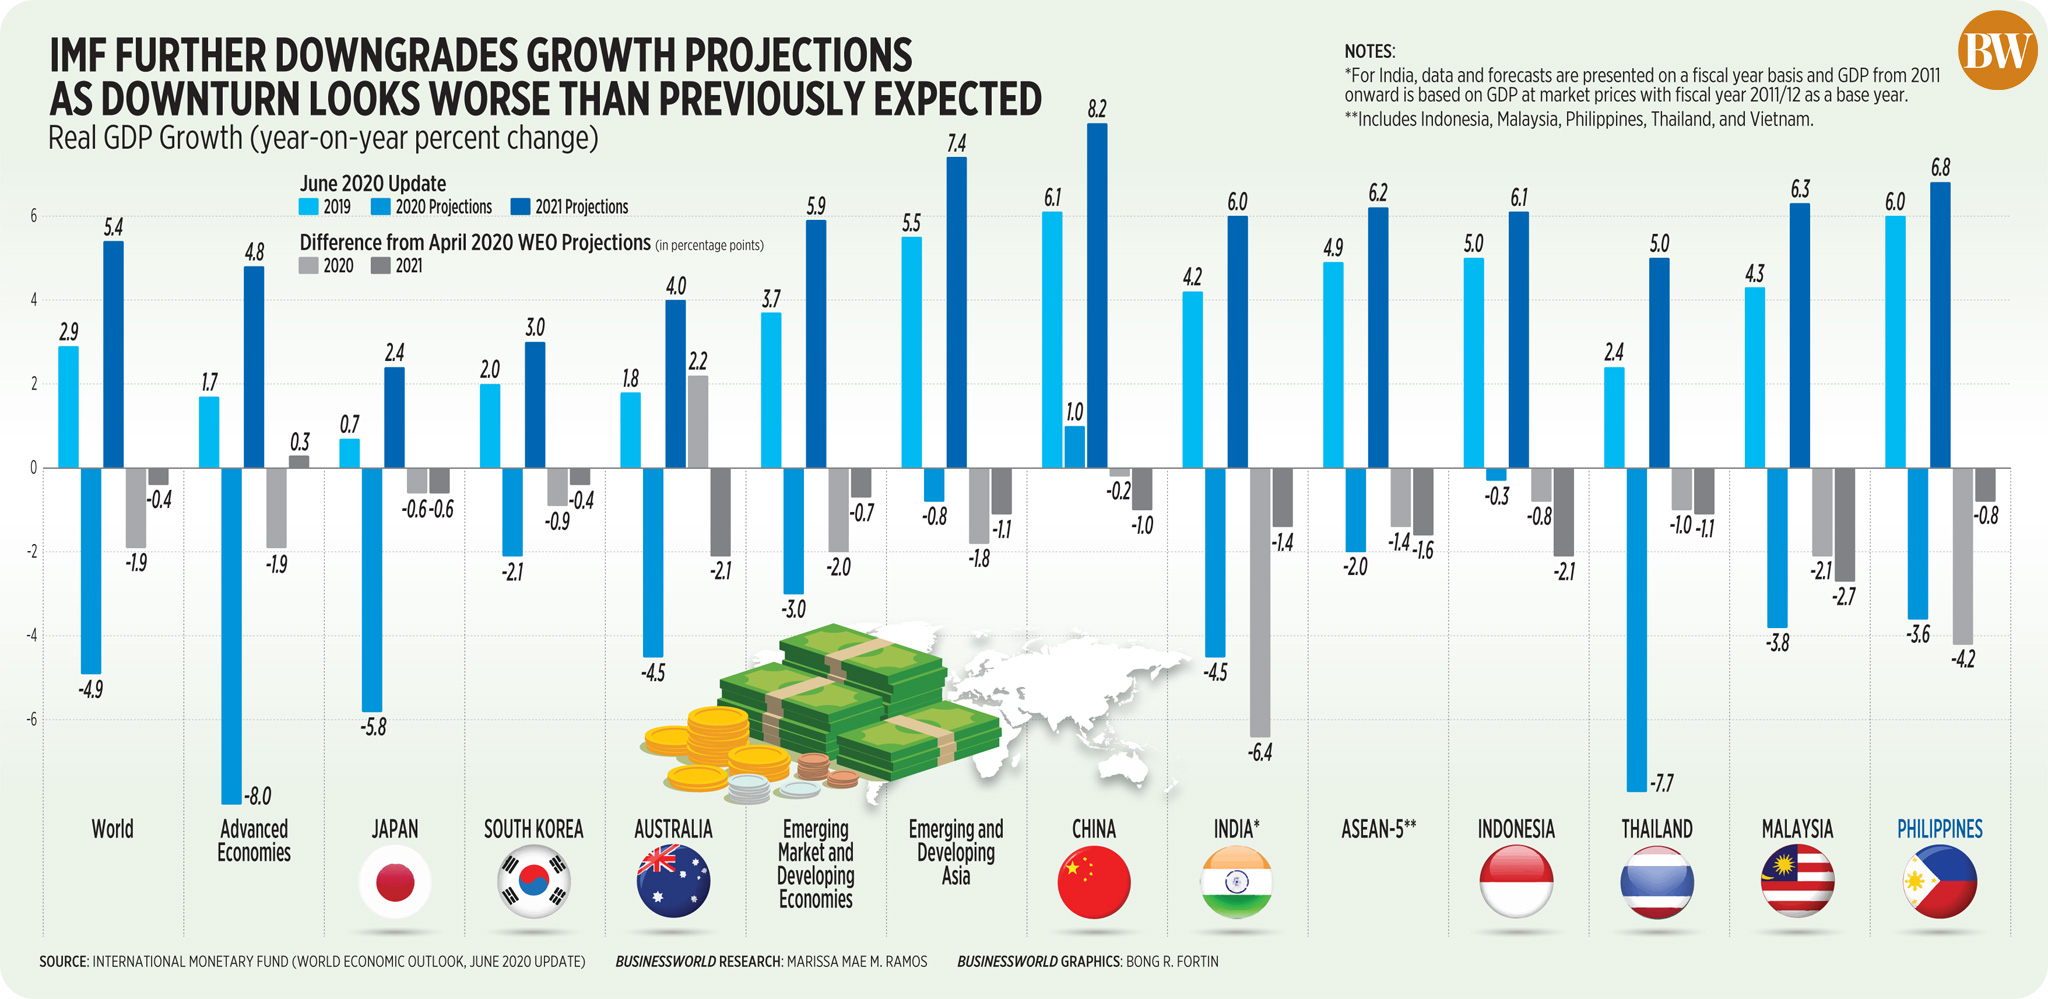 IMF further downgrades growth projections as downturn looks worse than previously expected